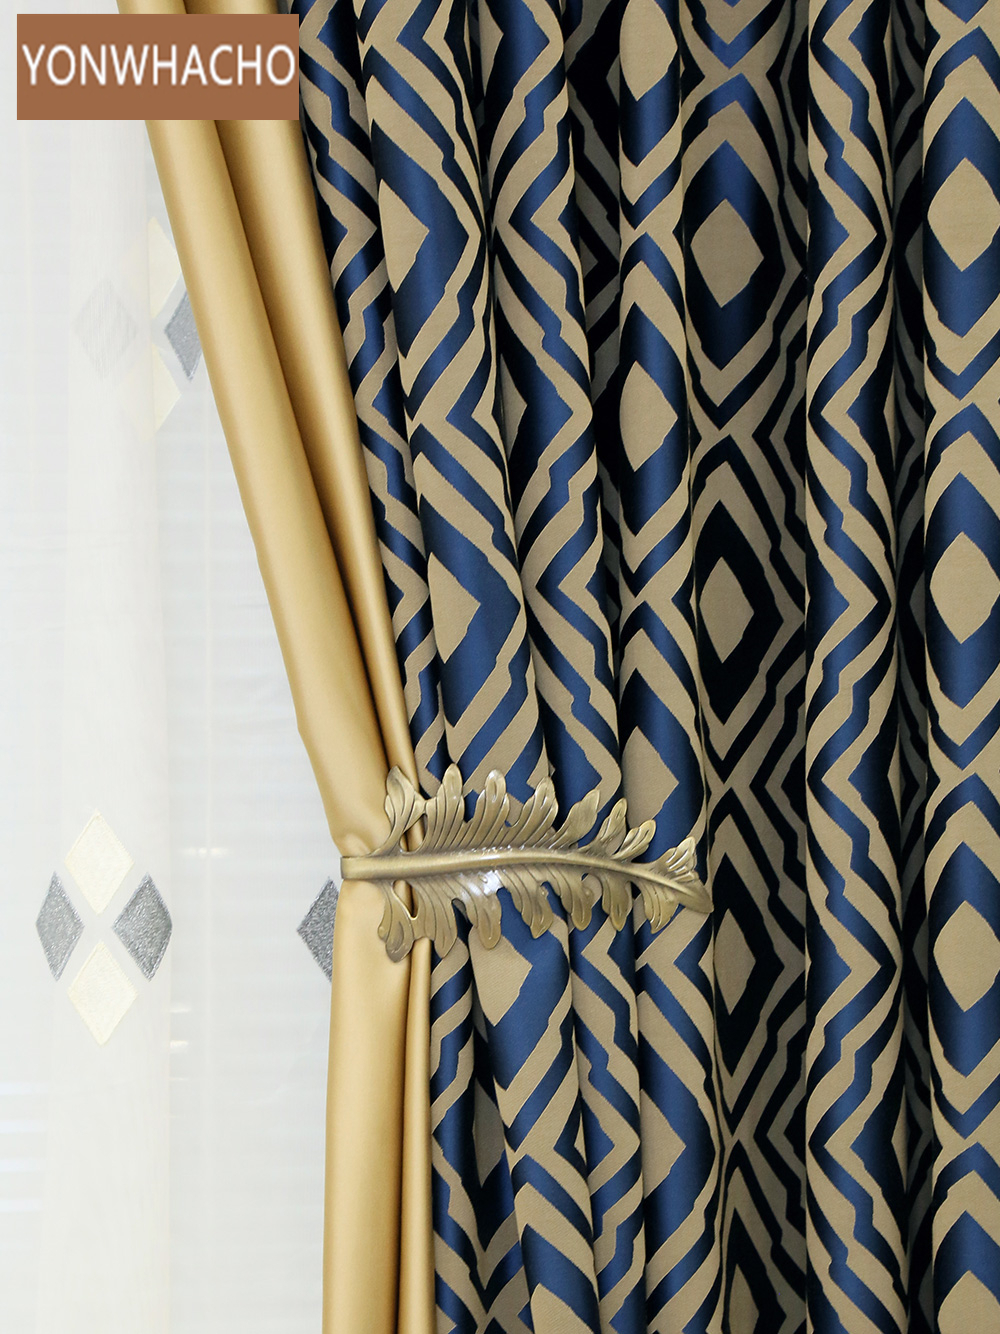 Custom Curtains High Quality Plaid Postmodern High-precision Jacquard Blue Thick Cloth Blackout Curtain Tulle Drapes B568